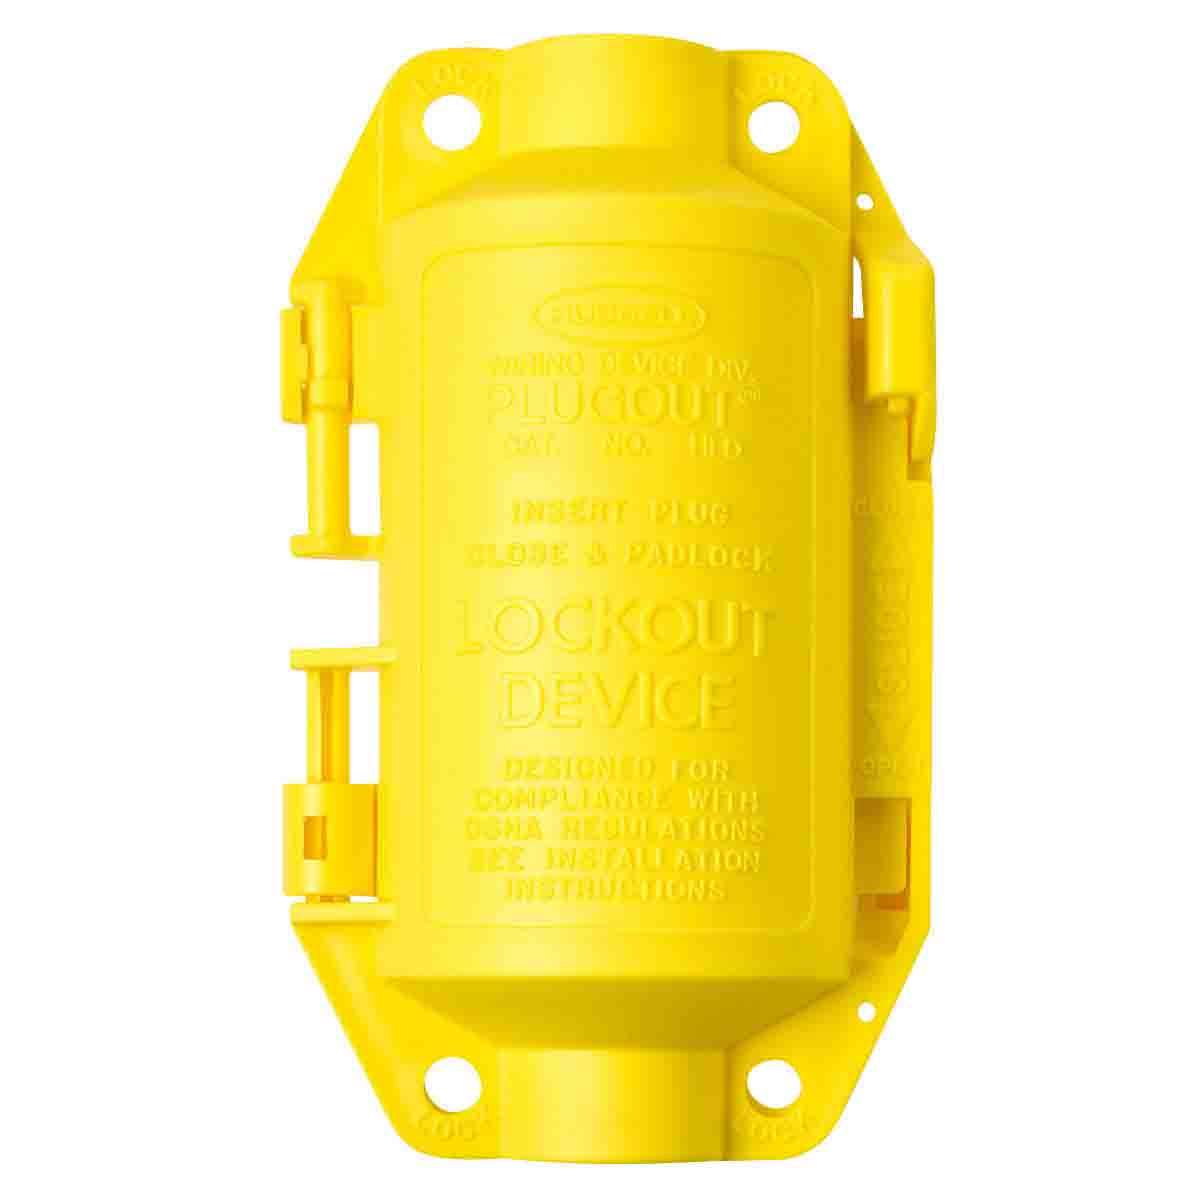 Brady® PLUGOUT® 65695 Encasing Electrical Risk Small Plug Lockout Device, For Use With Hubbell Plugs, 1 Padlocks, 0.37 in Dia Max Padlock Shackle, Polypropylene, Yellow